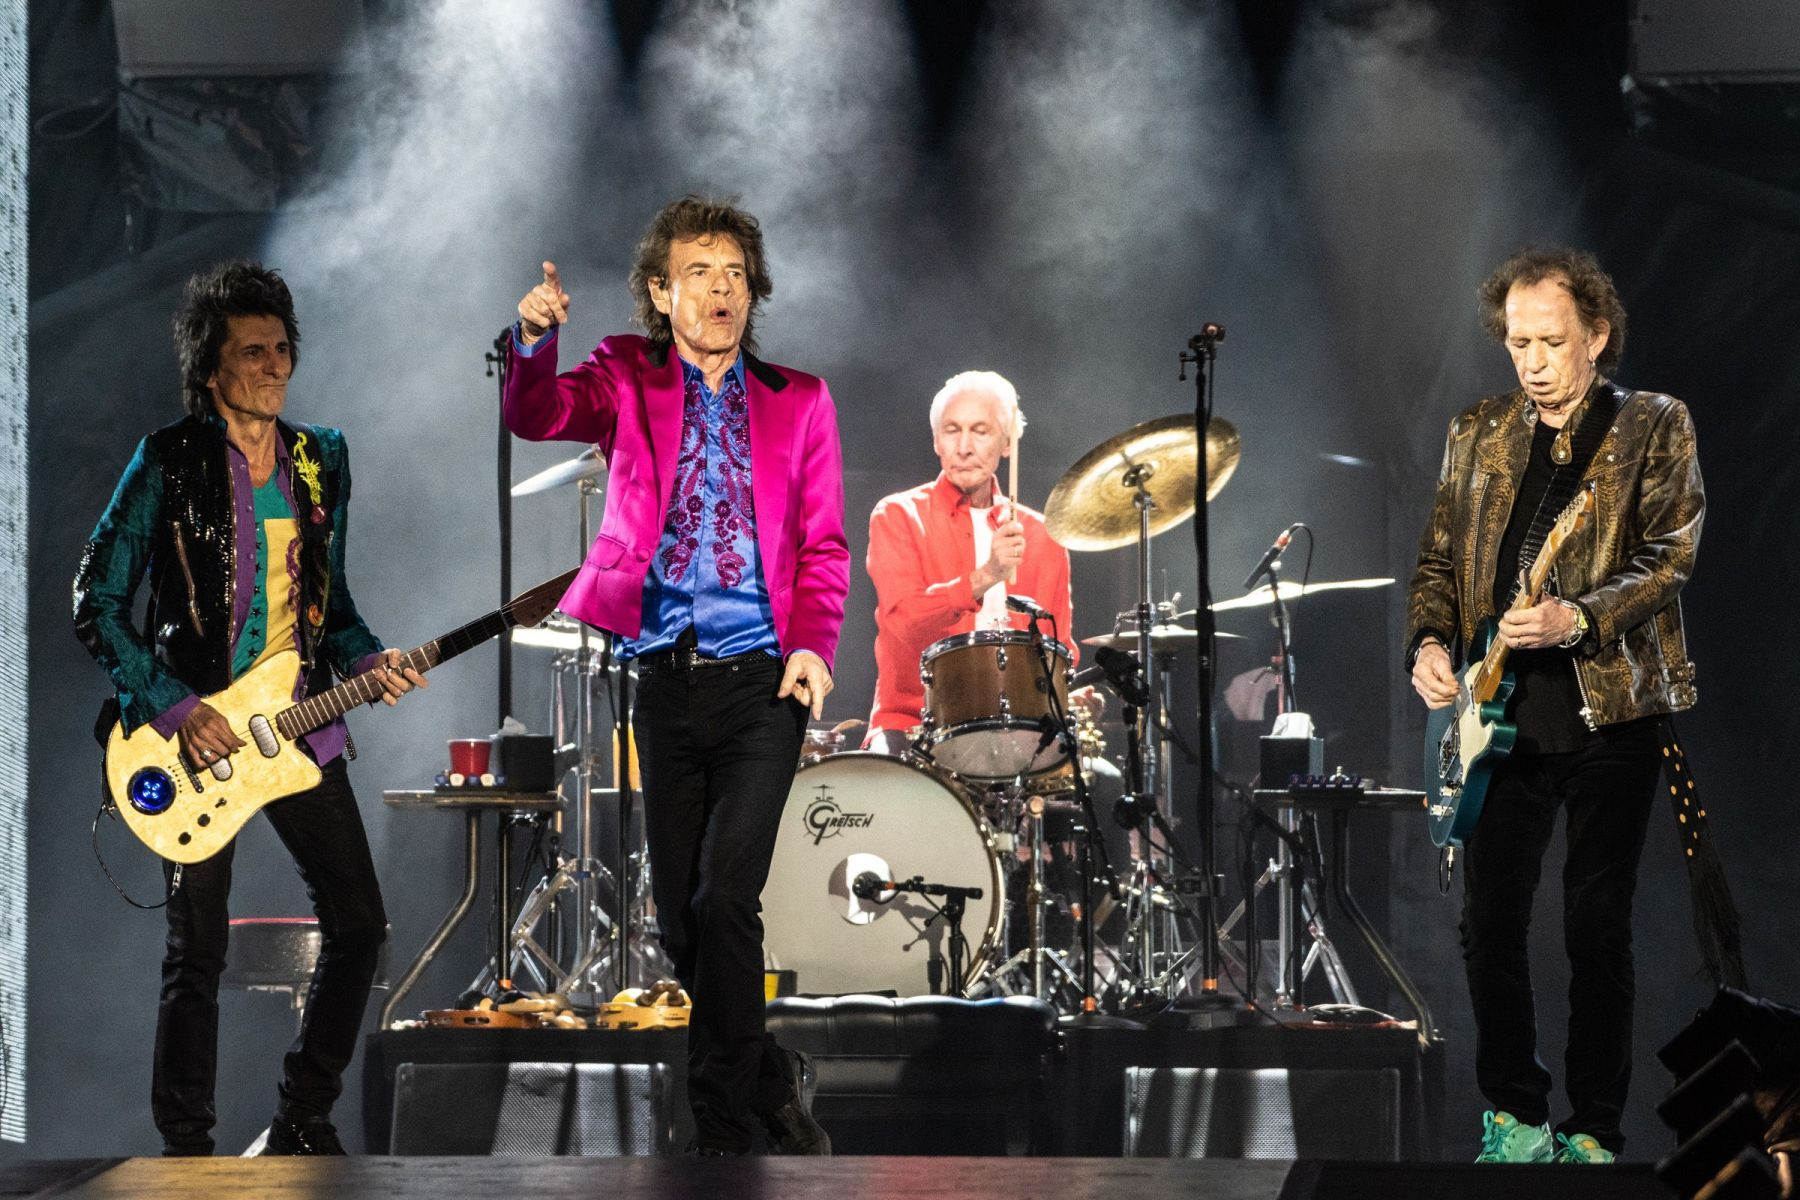 The Rolling Stones - Ronnie Wood, Mick Jagger, Charlie Watts and Keith RichardsThe Rolling Stones in concert, Santa Clara, USA - 18 Aug 2019